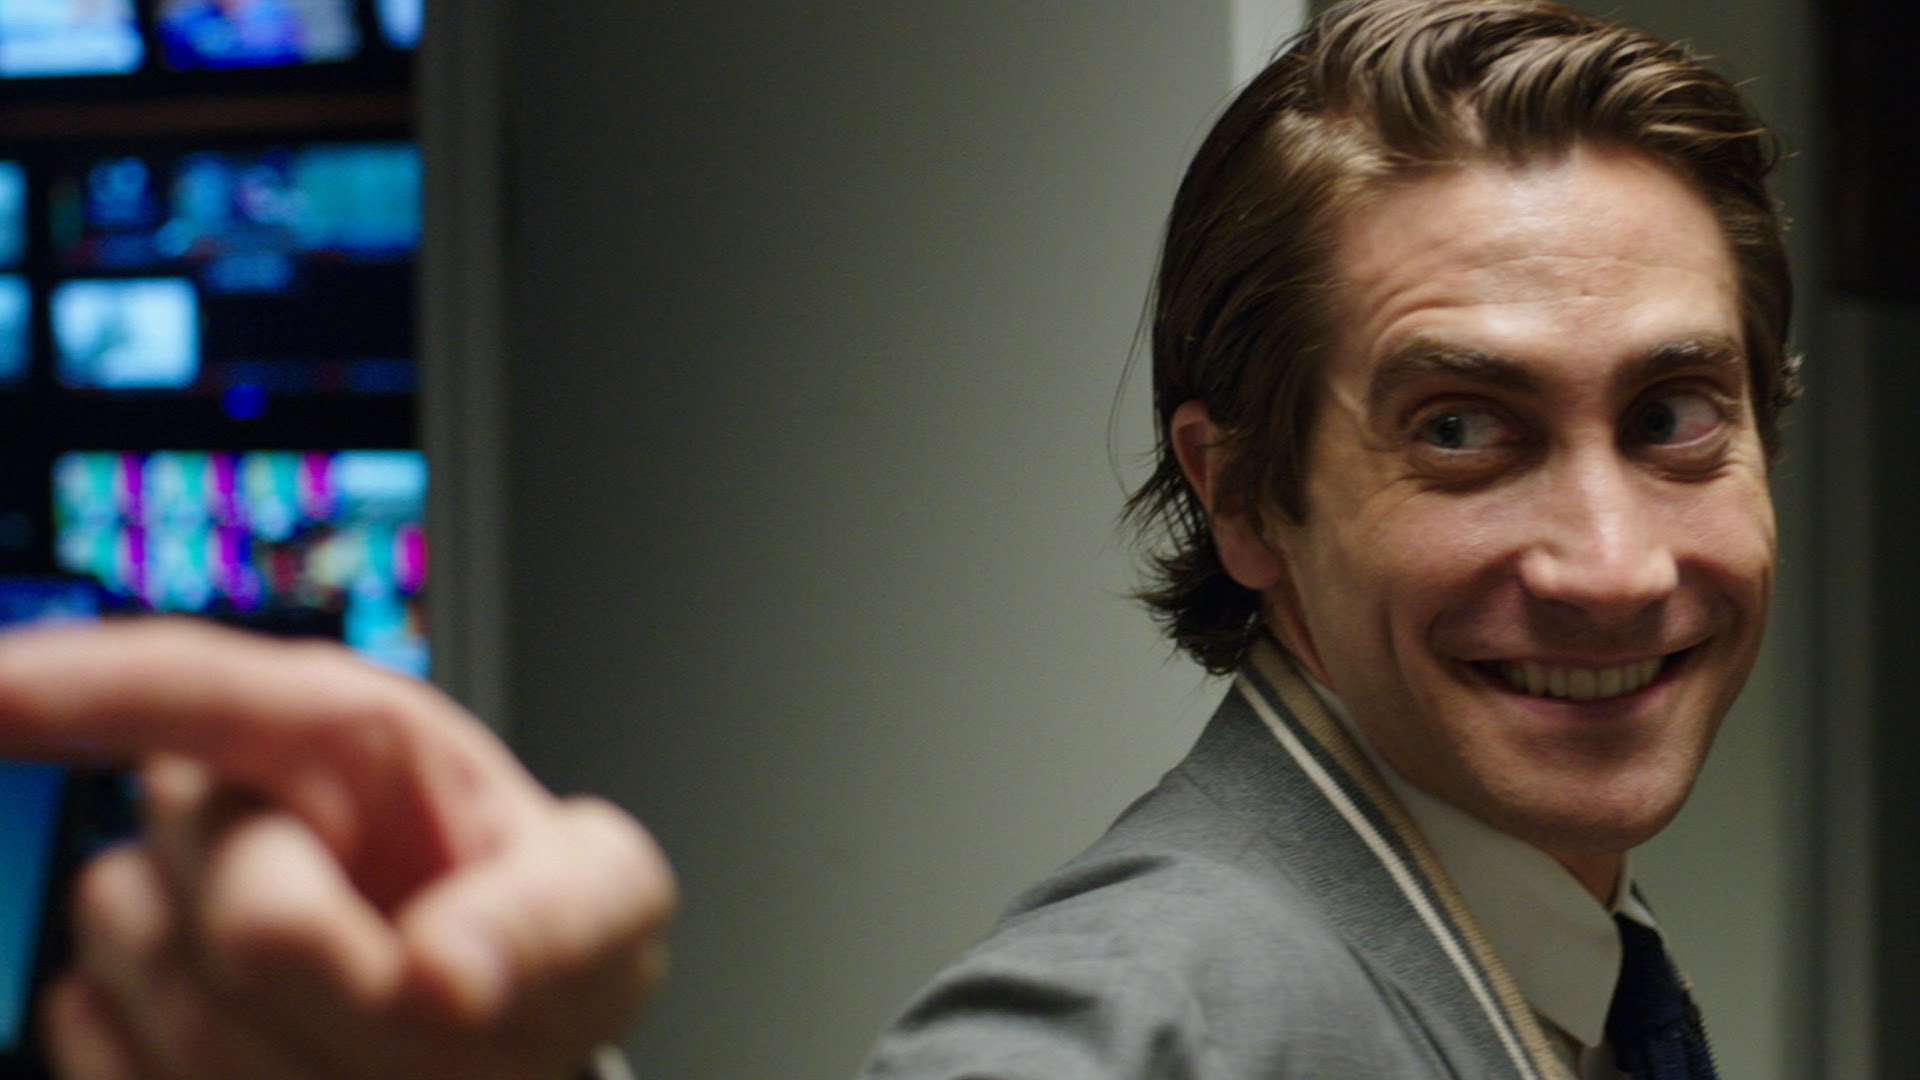 Nightcrawler Movie Review and Plot - Jake Gyllenhaal, Dan Gilroy